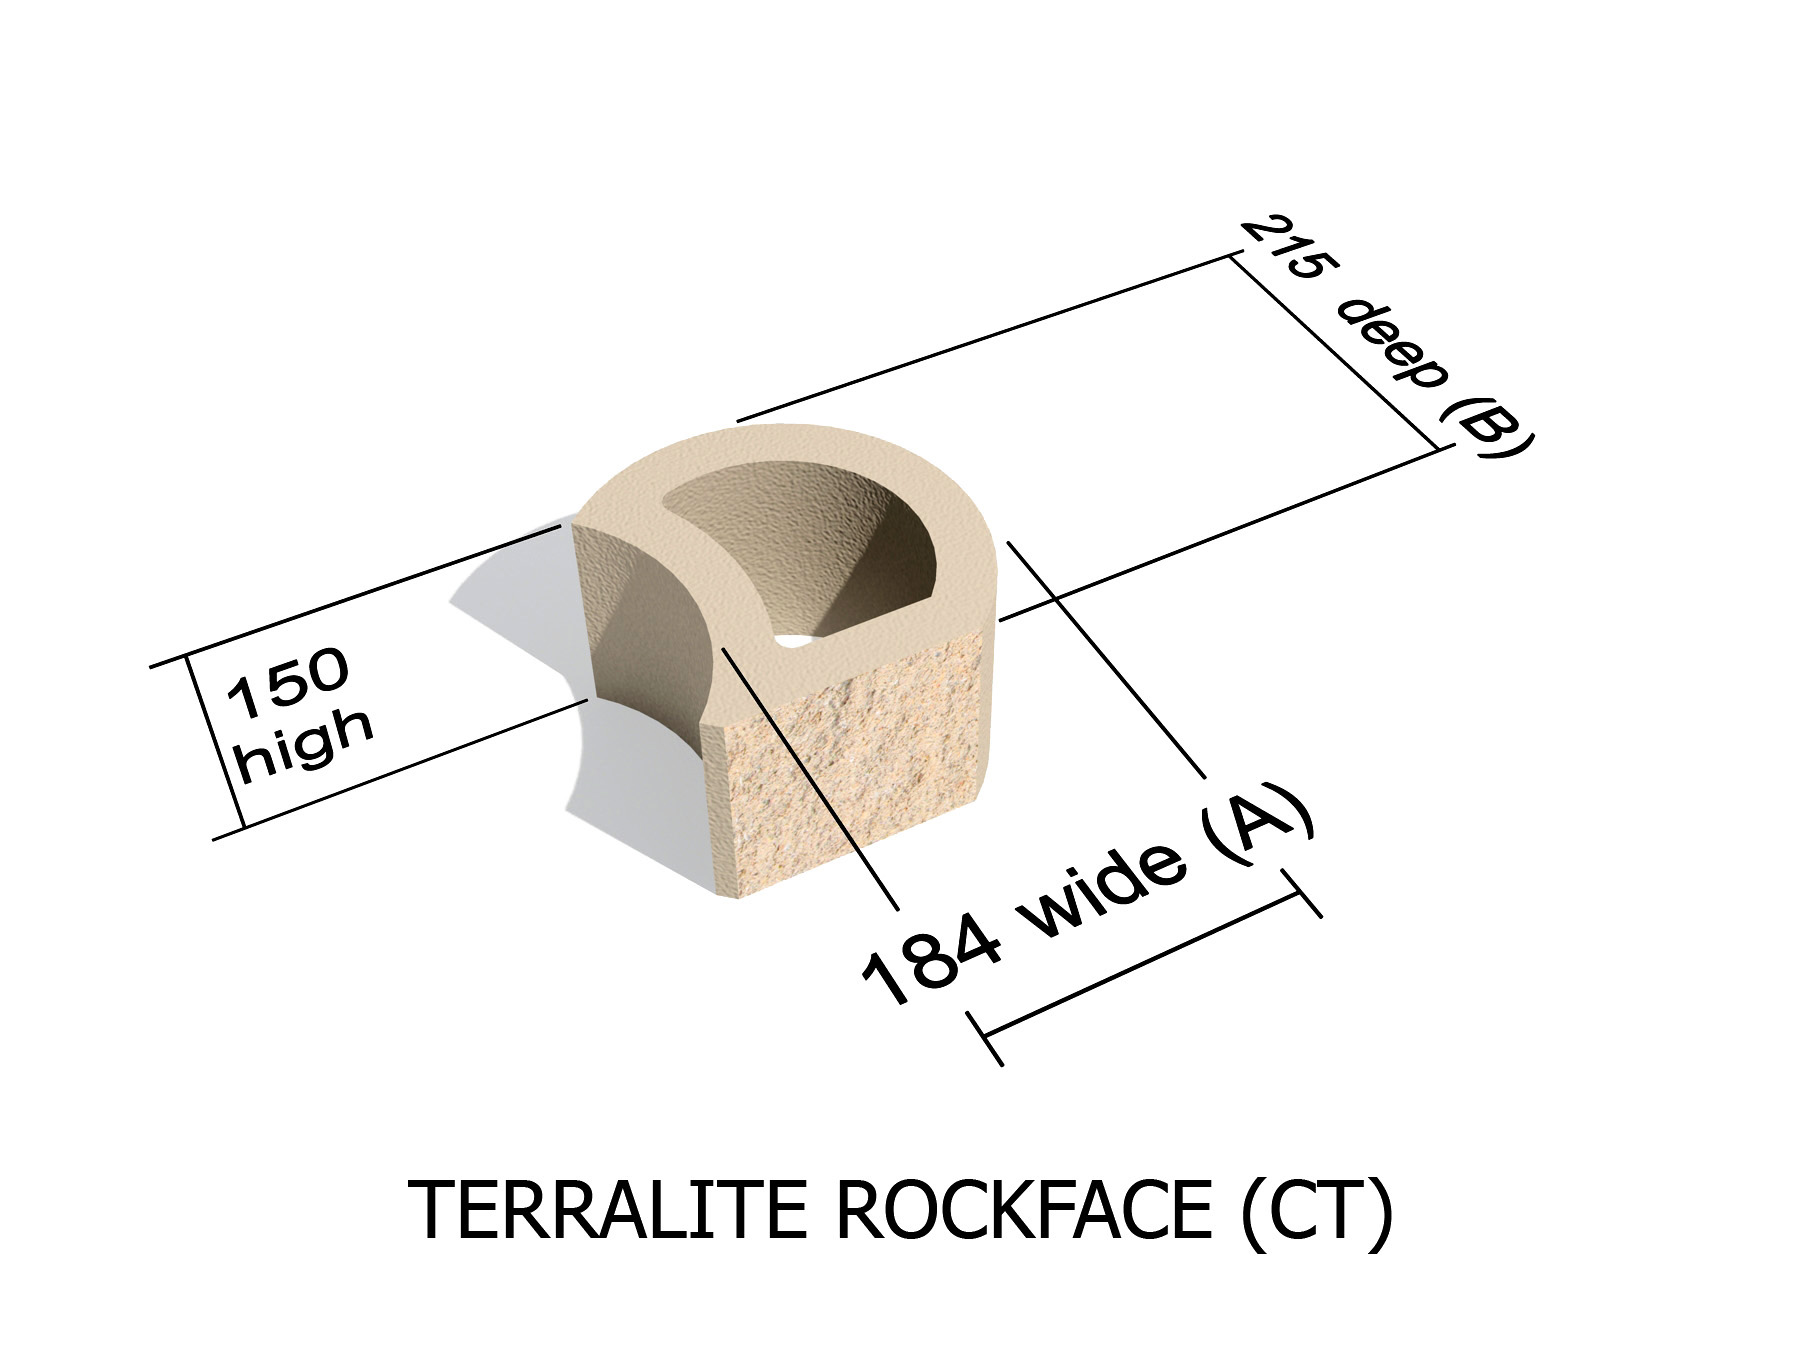 L36_CT rock face retaining block